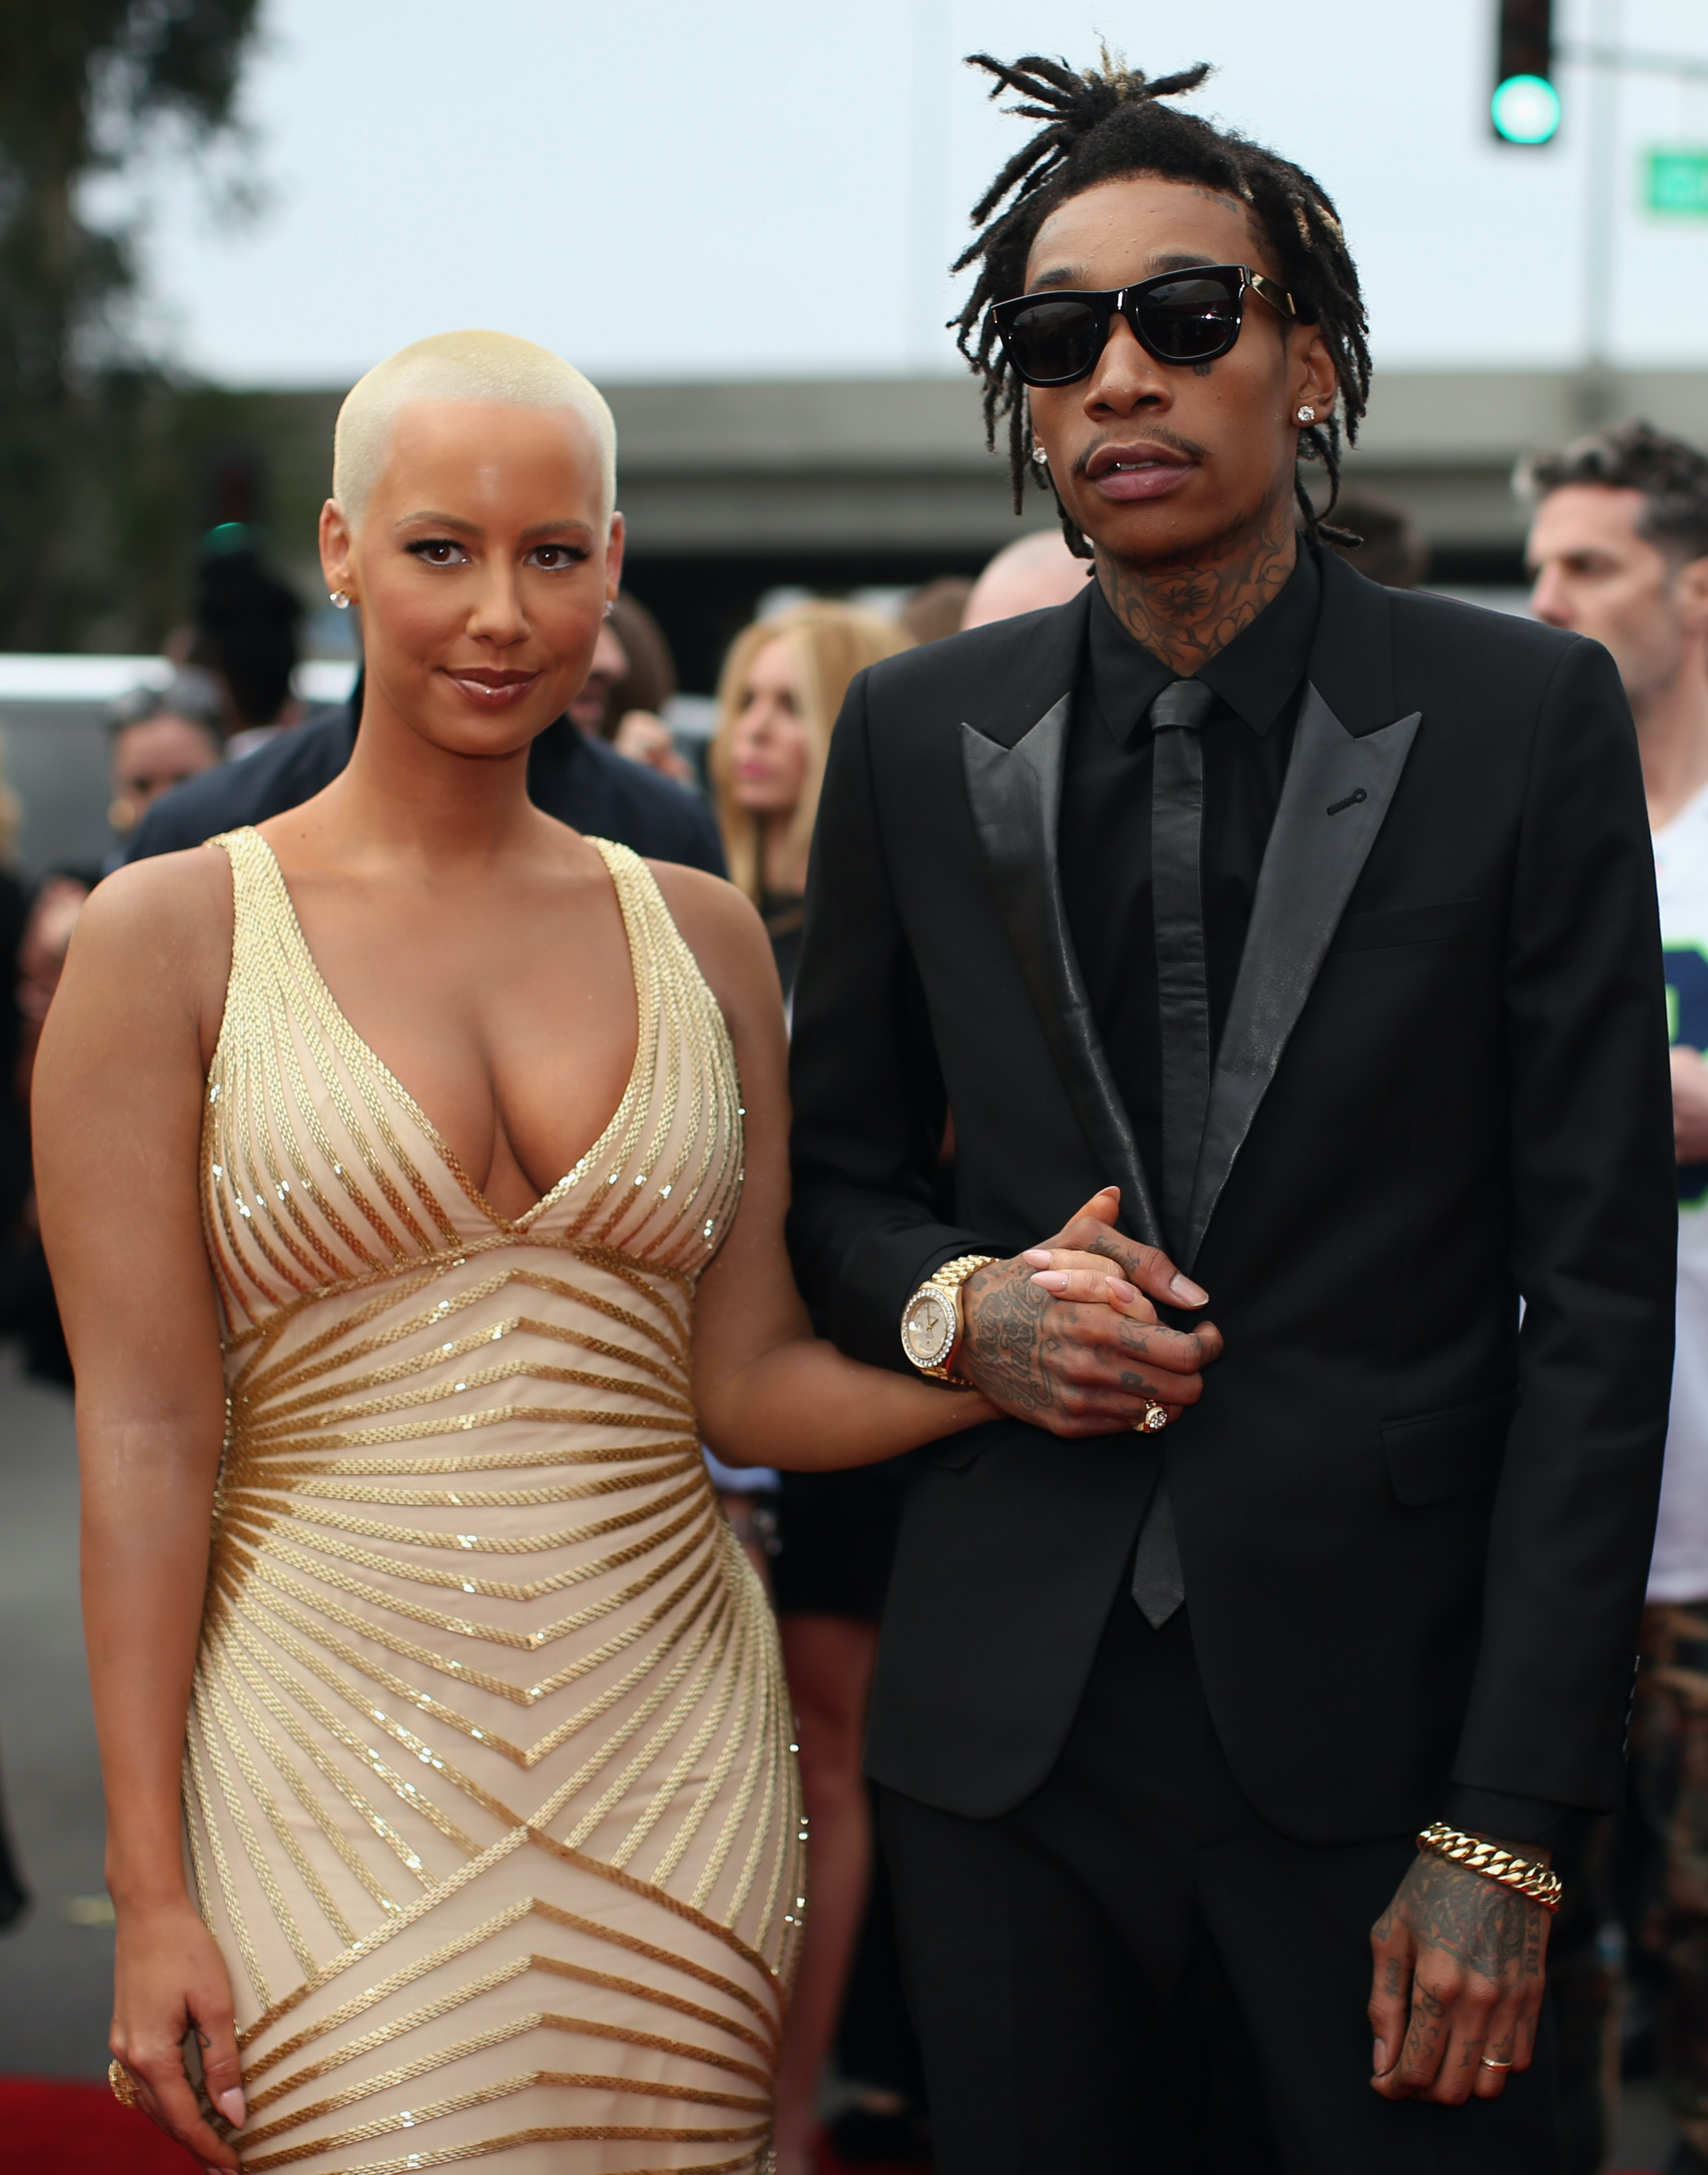 Pictures of wiz khalifa pictures of celebrities - Amber Rose Wiz Khalifa S Wedding Pictures Make It Clear They Re The Next Big Power Couple Photos